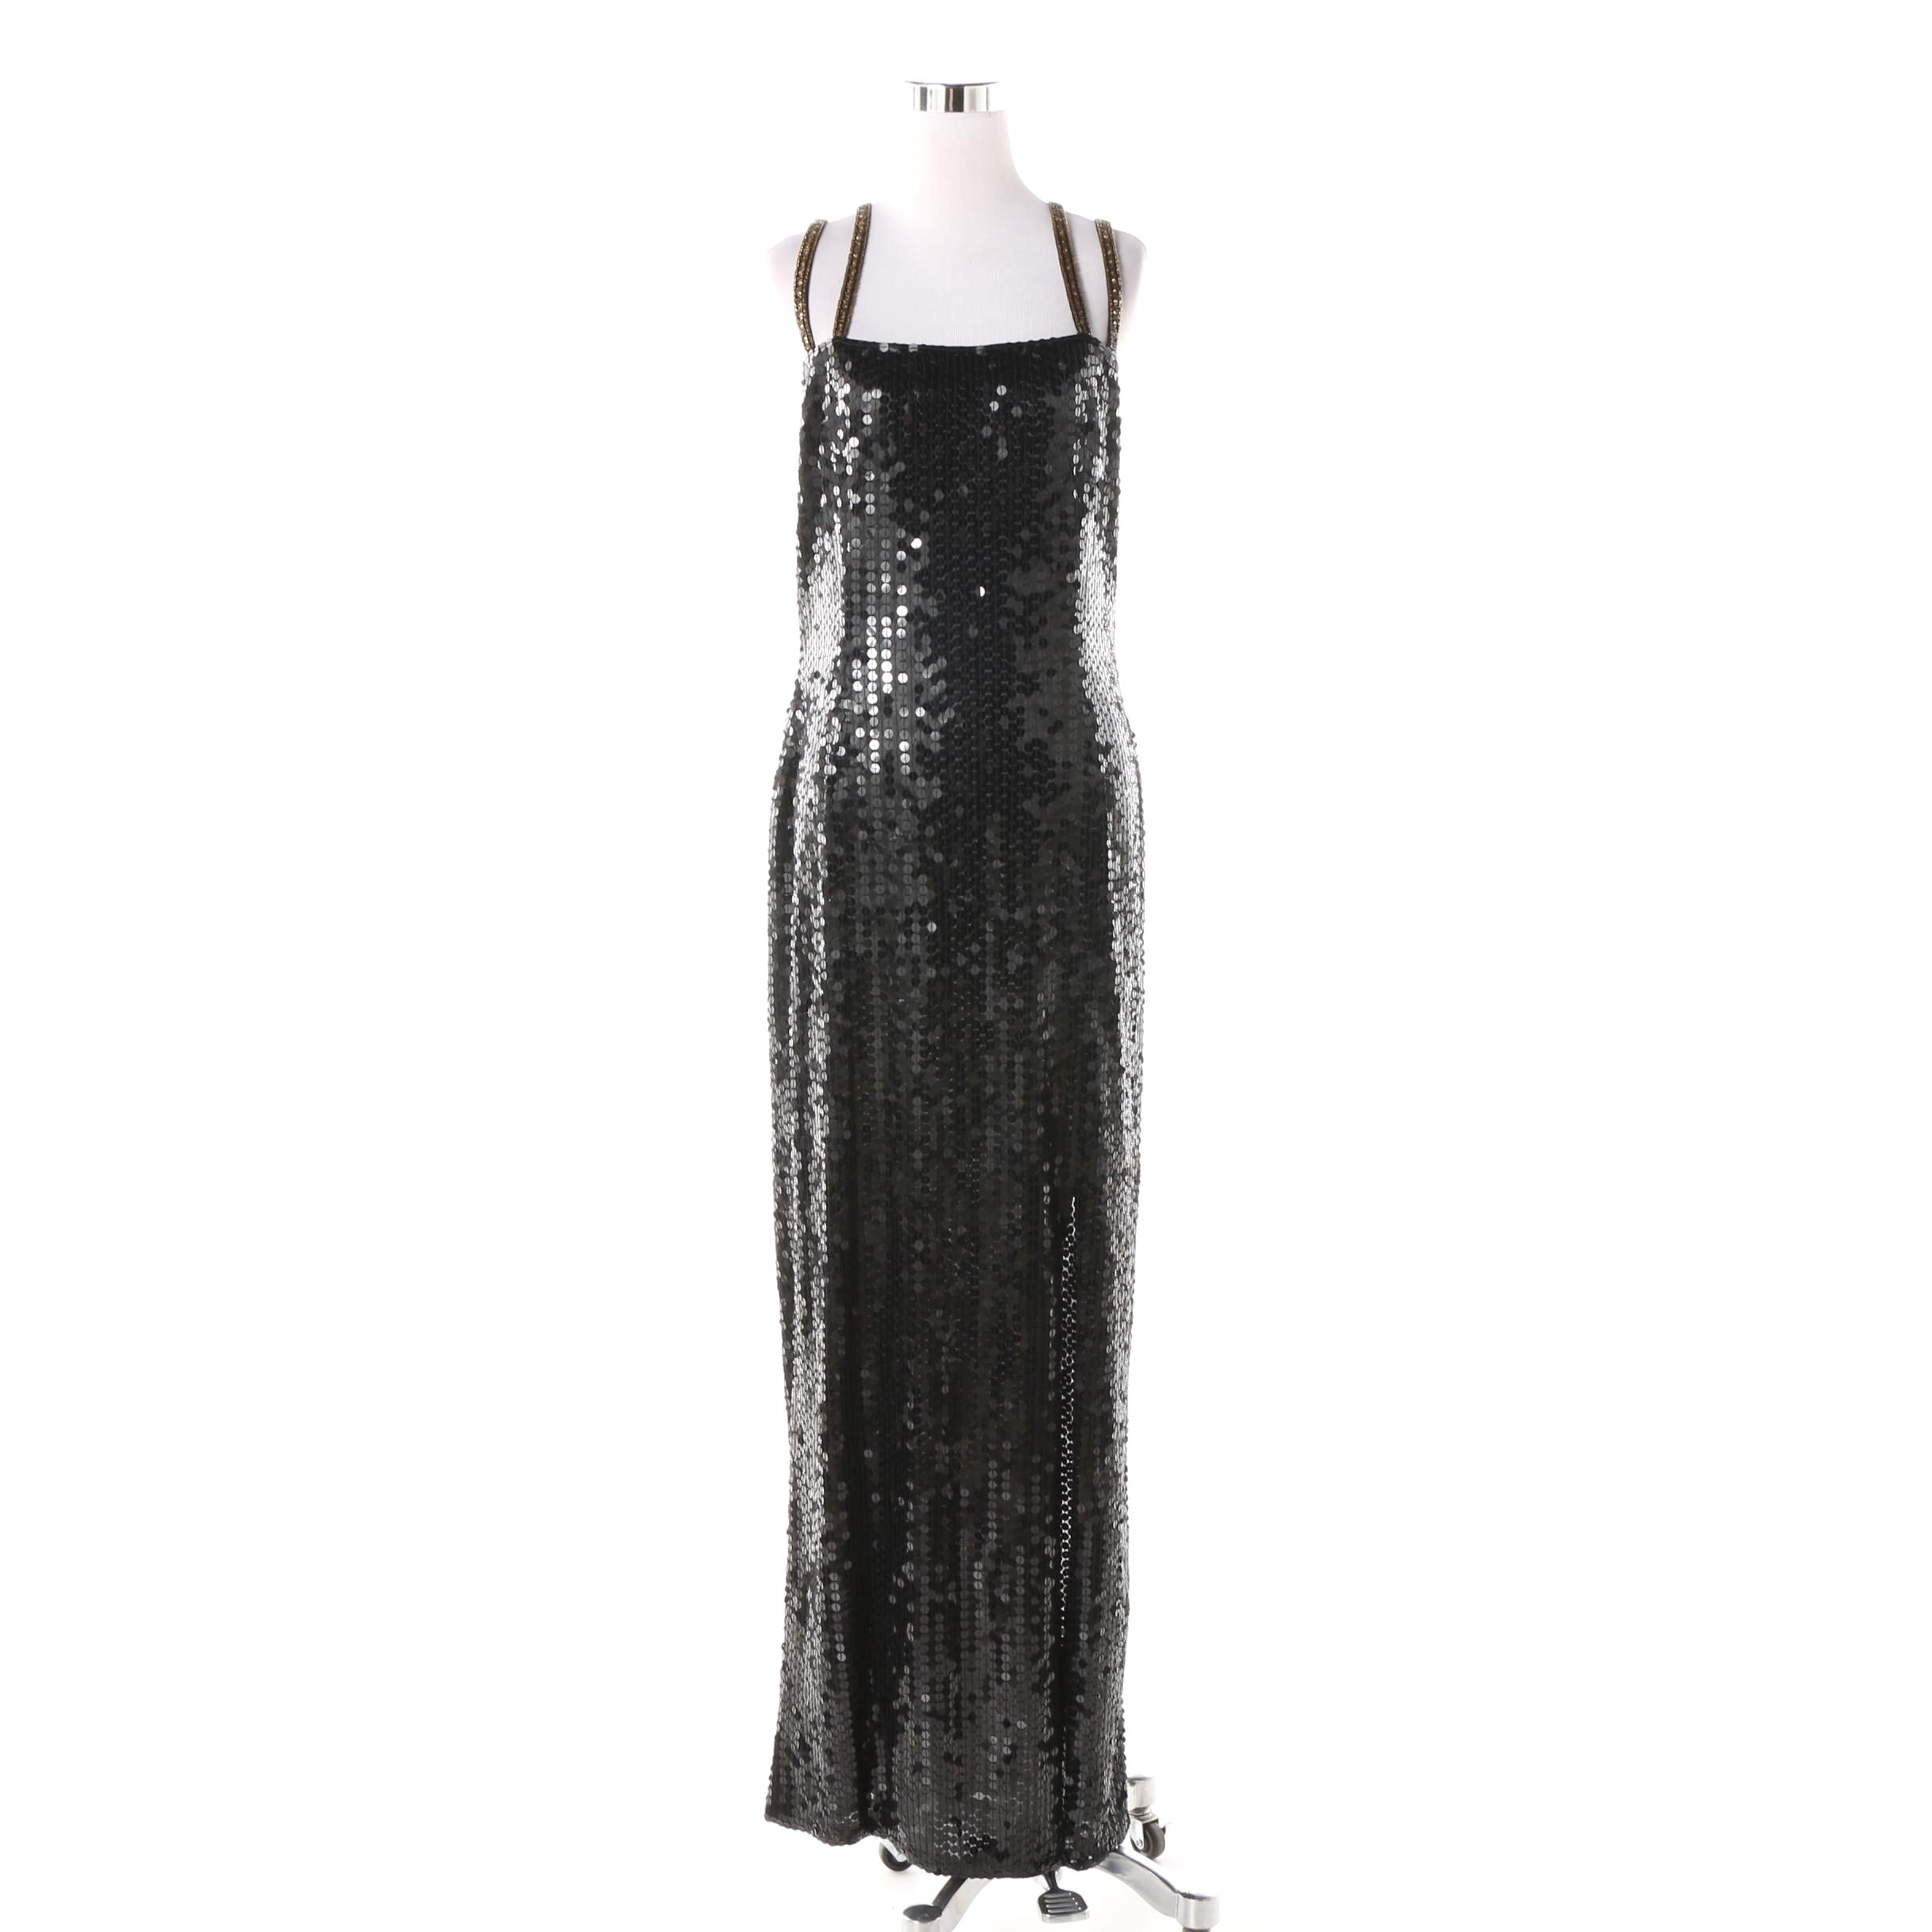 Bella Diosa Black Sequined Sleeveless Evening Gown